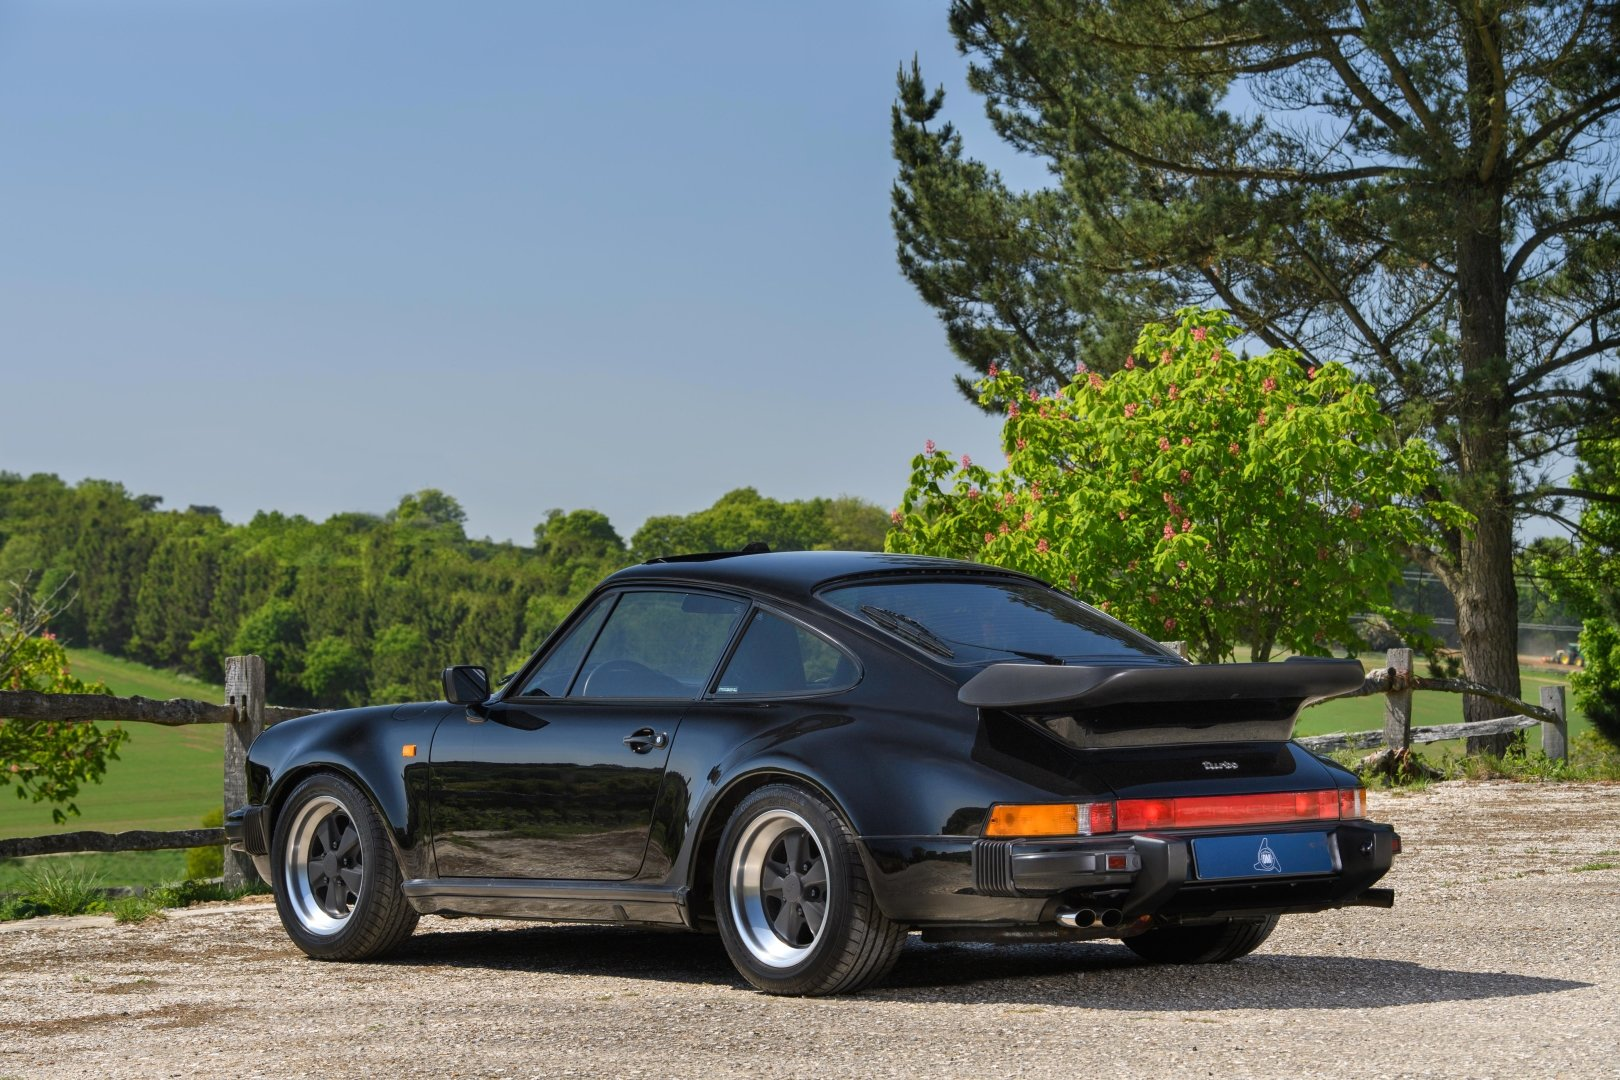 1989 Porsche 930 Turbo 'S' - G50 5 Speed - One of 55  For Sale (picture 2 of 6)